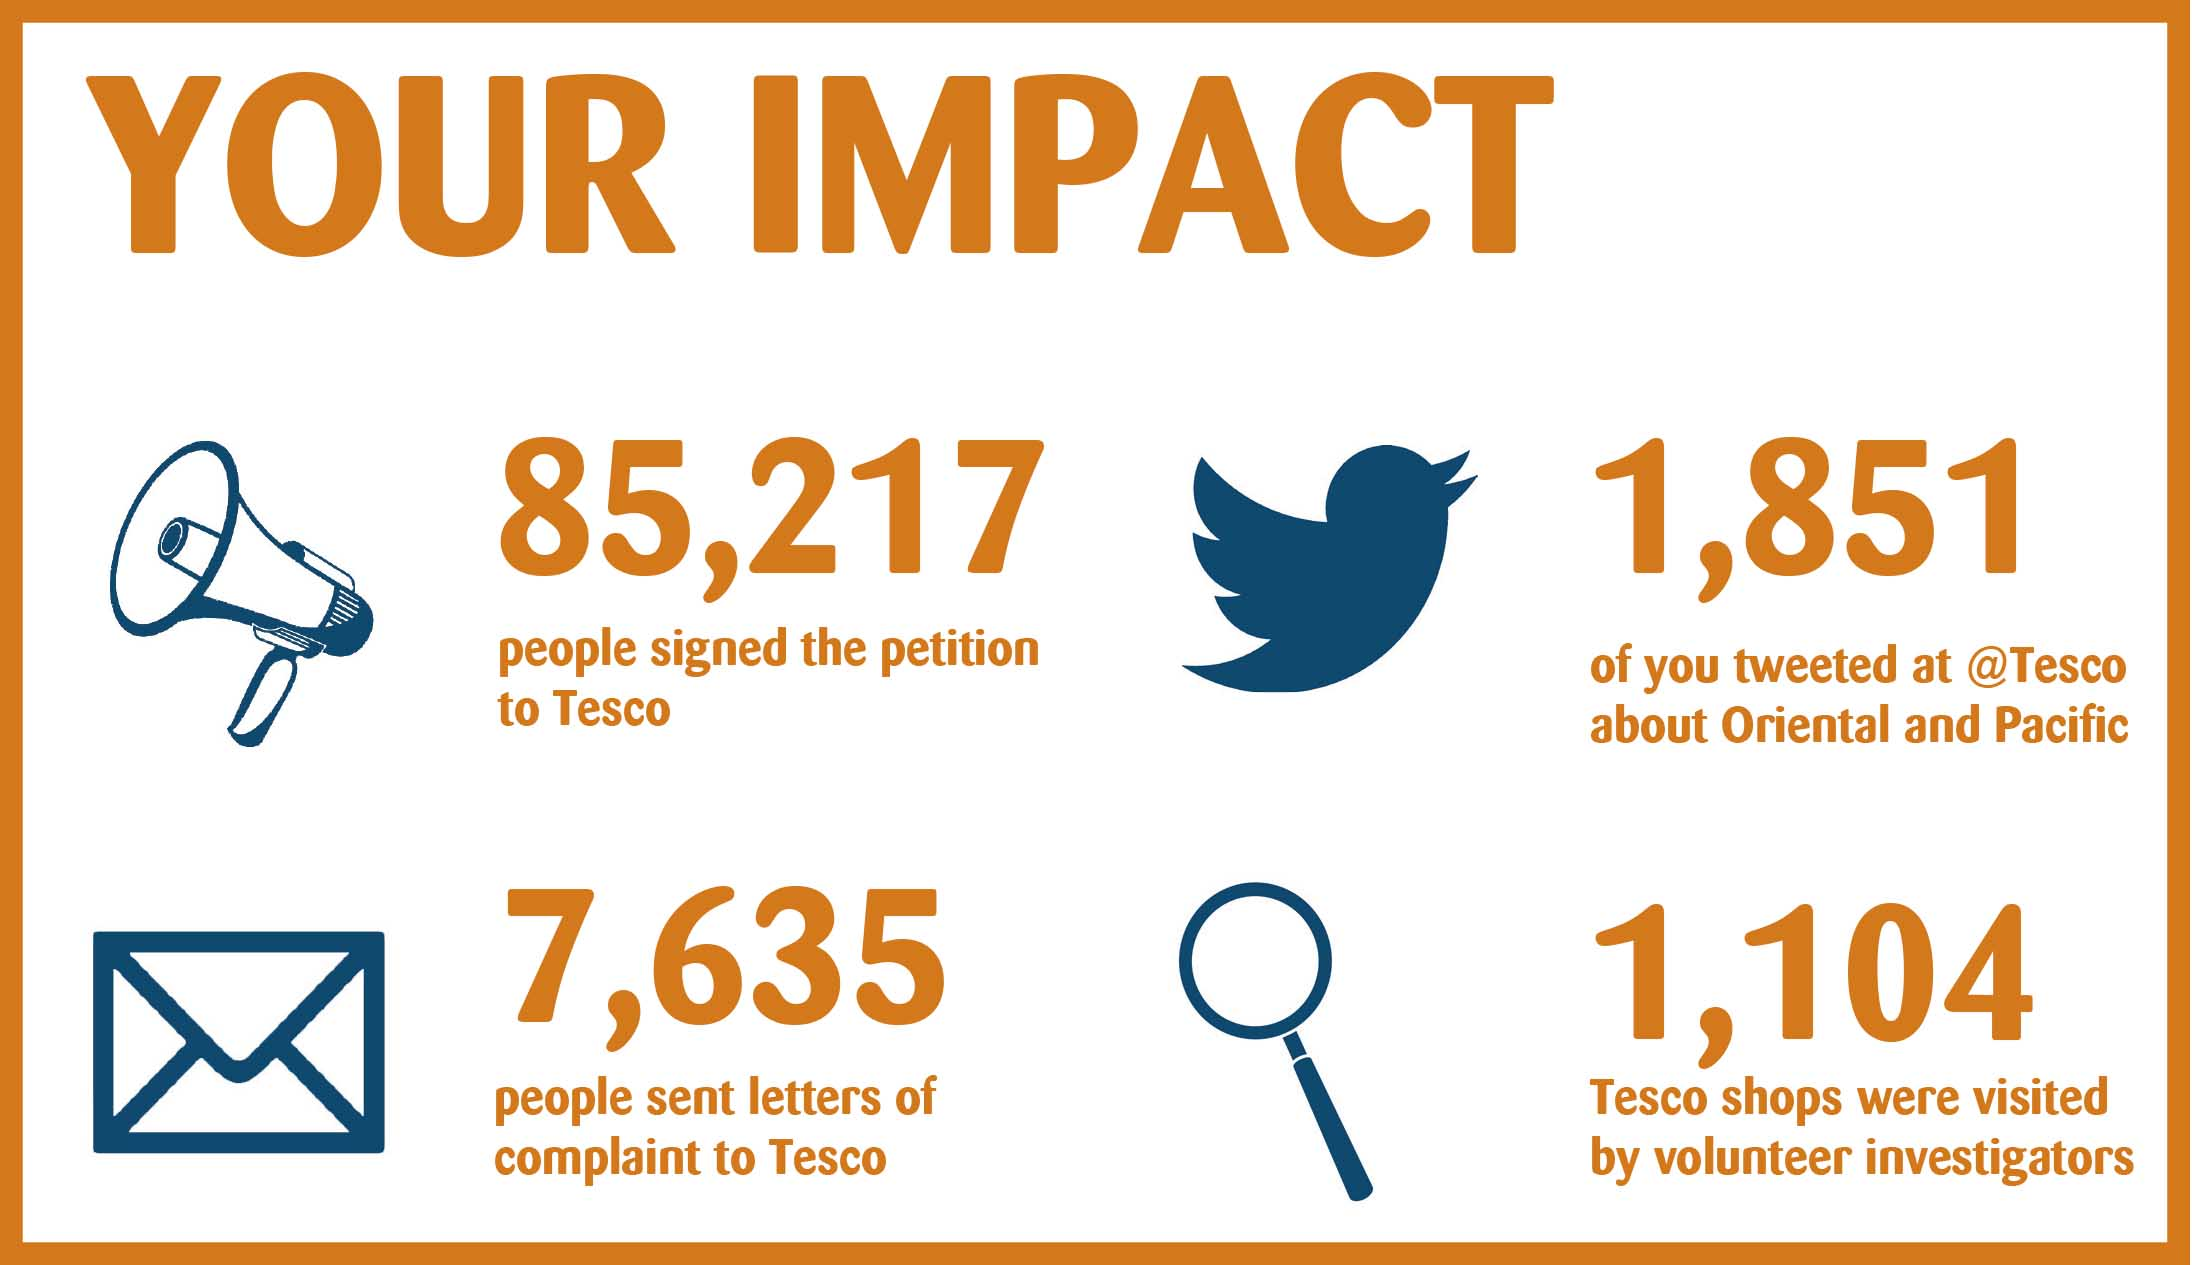 Your impact: in numbers